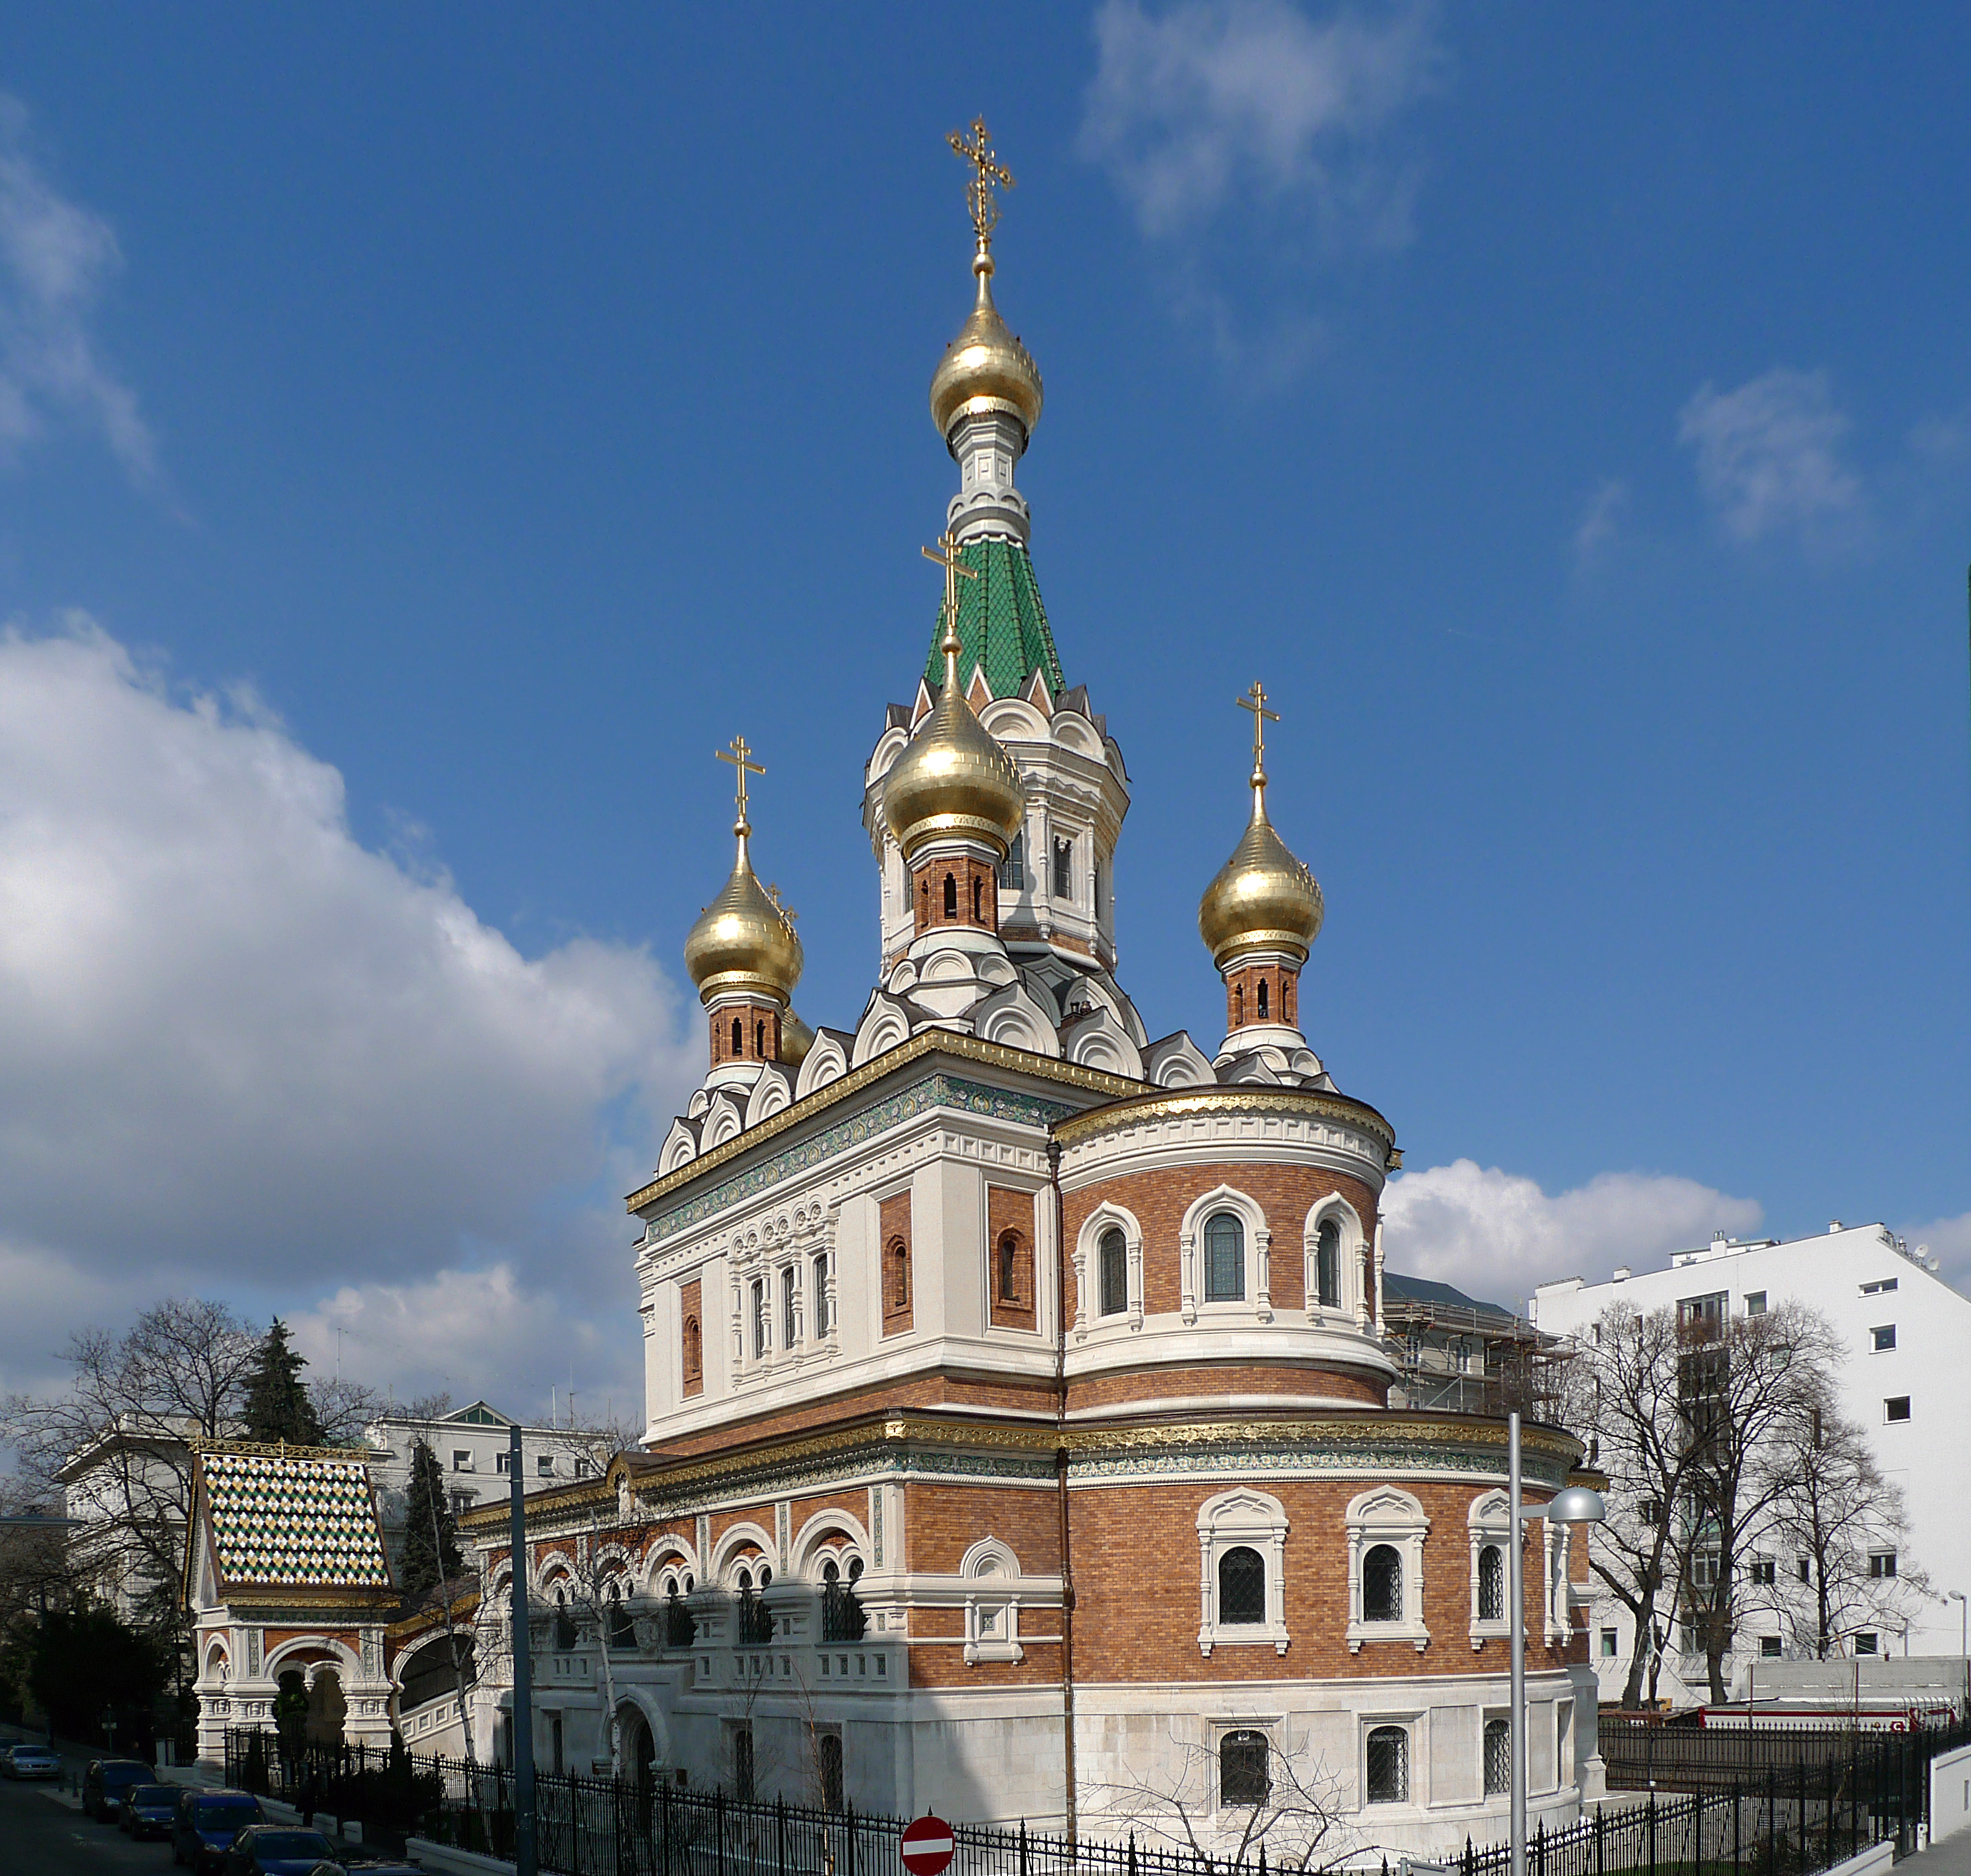 russisch orthodoxe kathedrale wien wikiwand. Black Bedroom Furniture Sets. Home Design Ideas